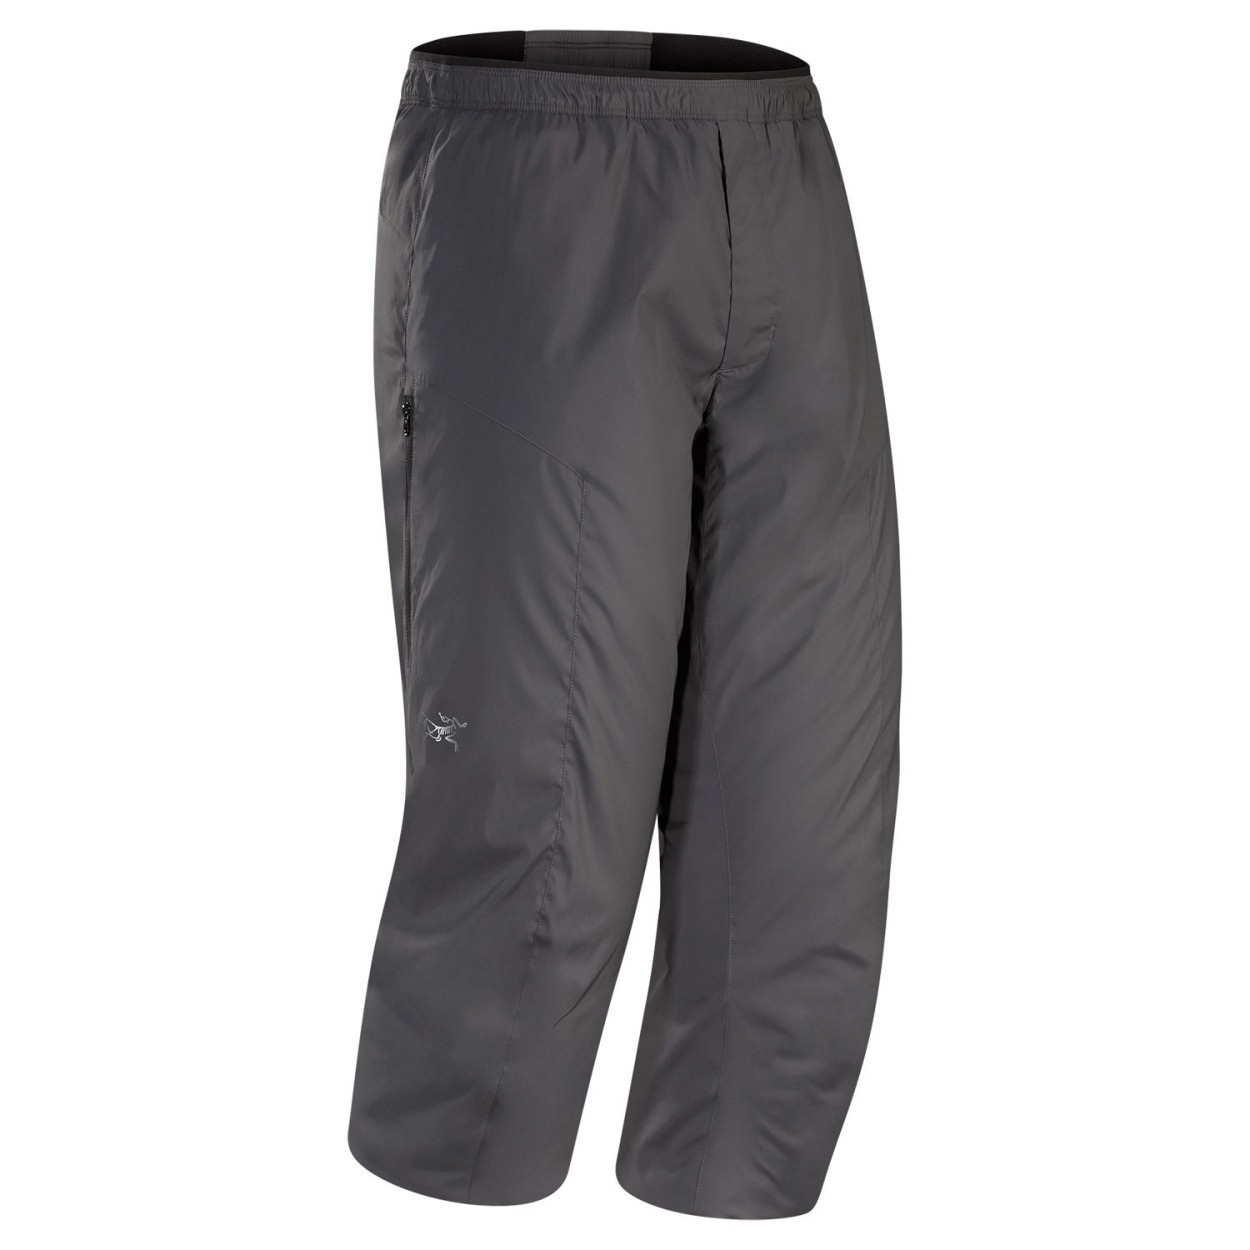 Arcteryx Mens Apparel And Gear At Mountaingear